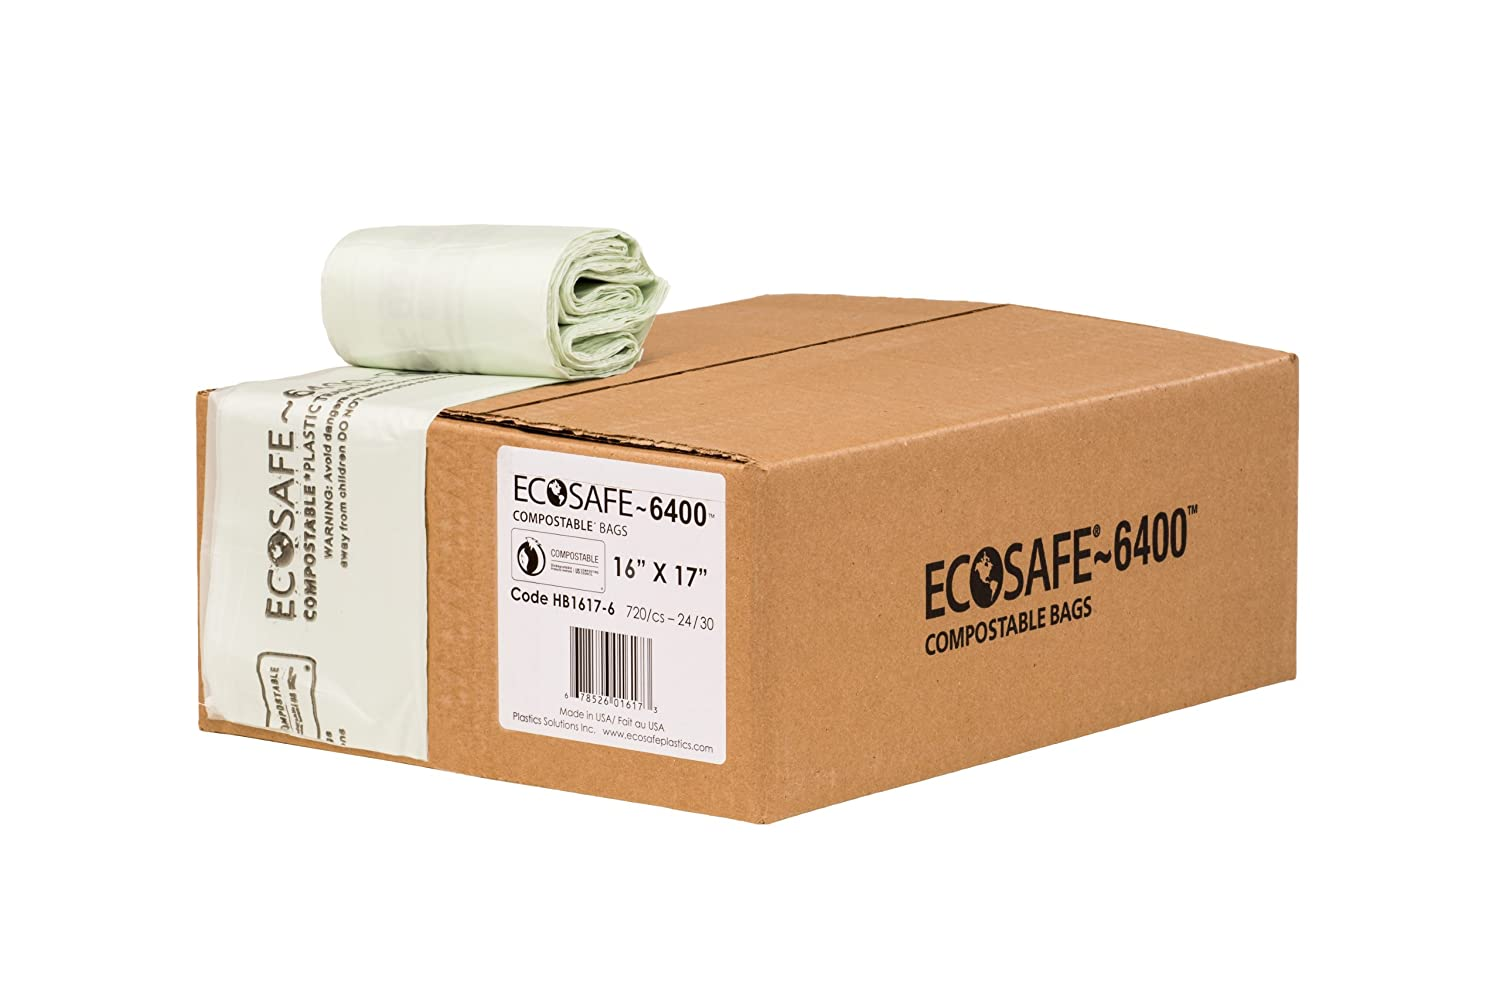 EcoSafe-6400 HB1617-6 Compostable Certified Fixed price for sale Phoenix Mall Bag 2.